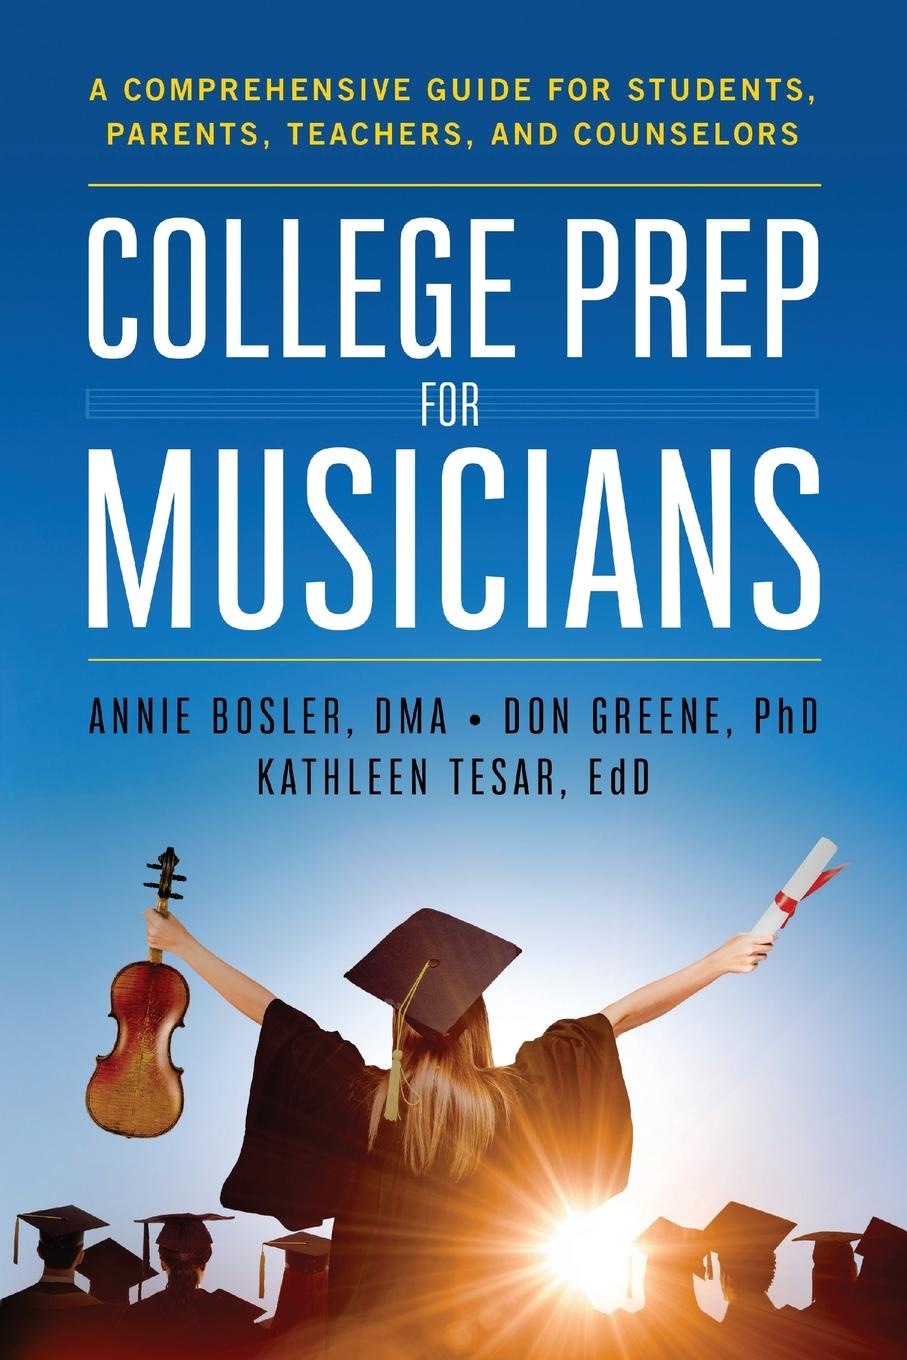 Annie Bosler, Don Greene, Kathleen Tesar College Prep for Musicians. A Comprehensive Guide for Students, Parents, Teachers, and Counselors the bremen town musicians